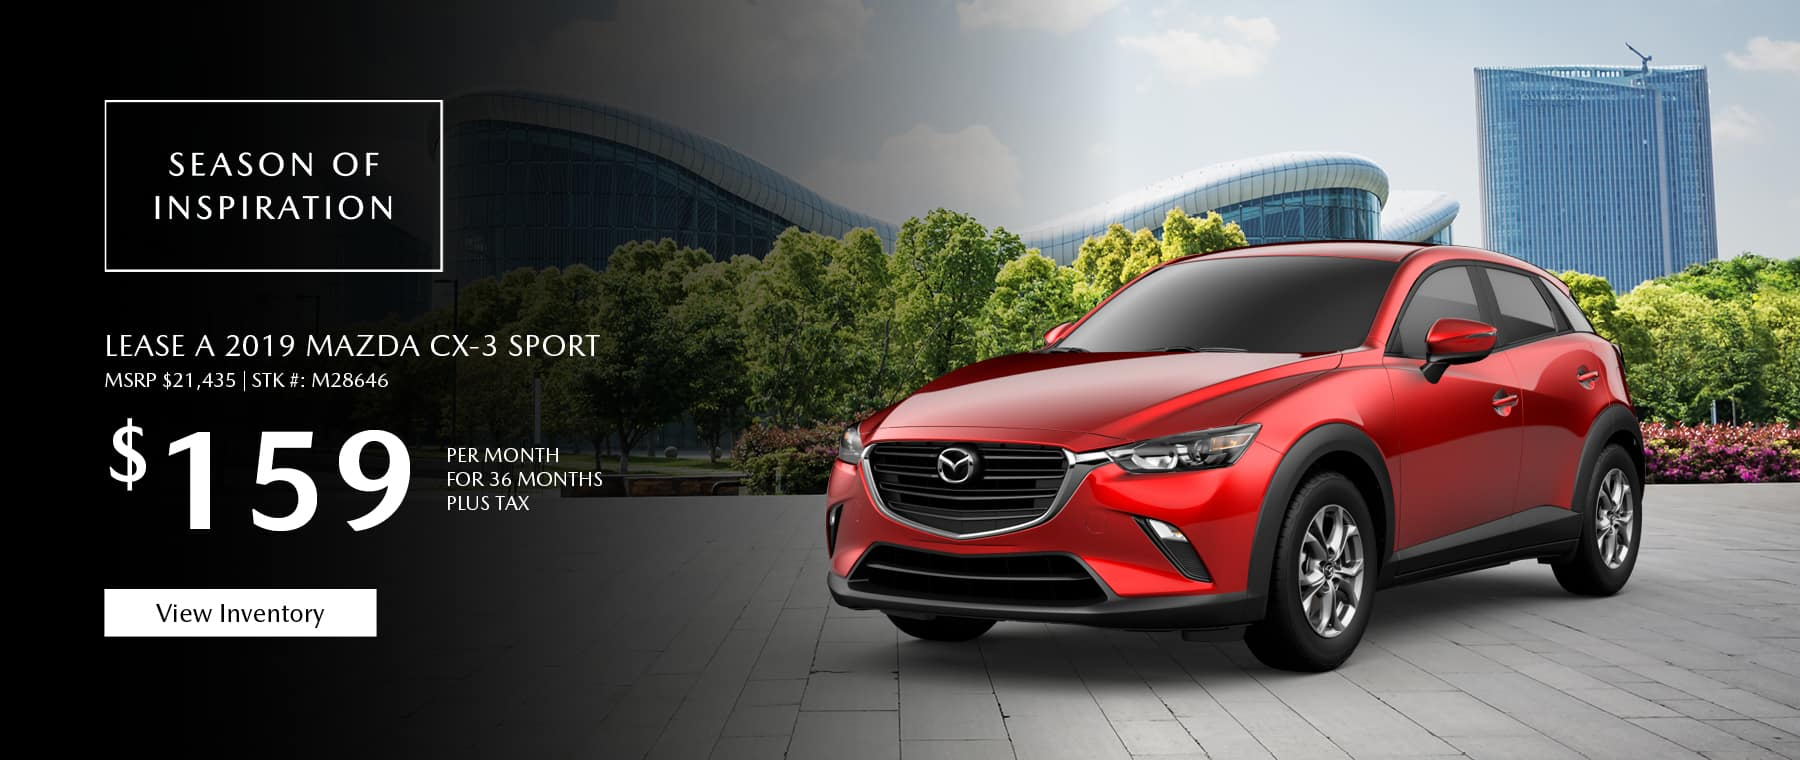 Lease the 2019 Mazda CX-3 for $159 per month, plus tax.